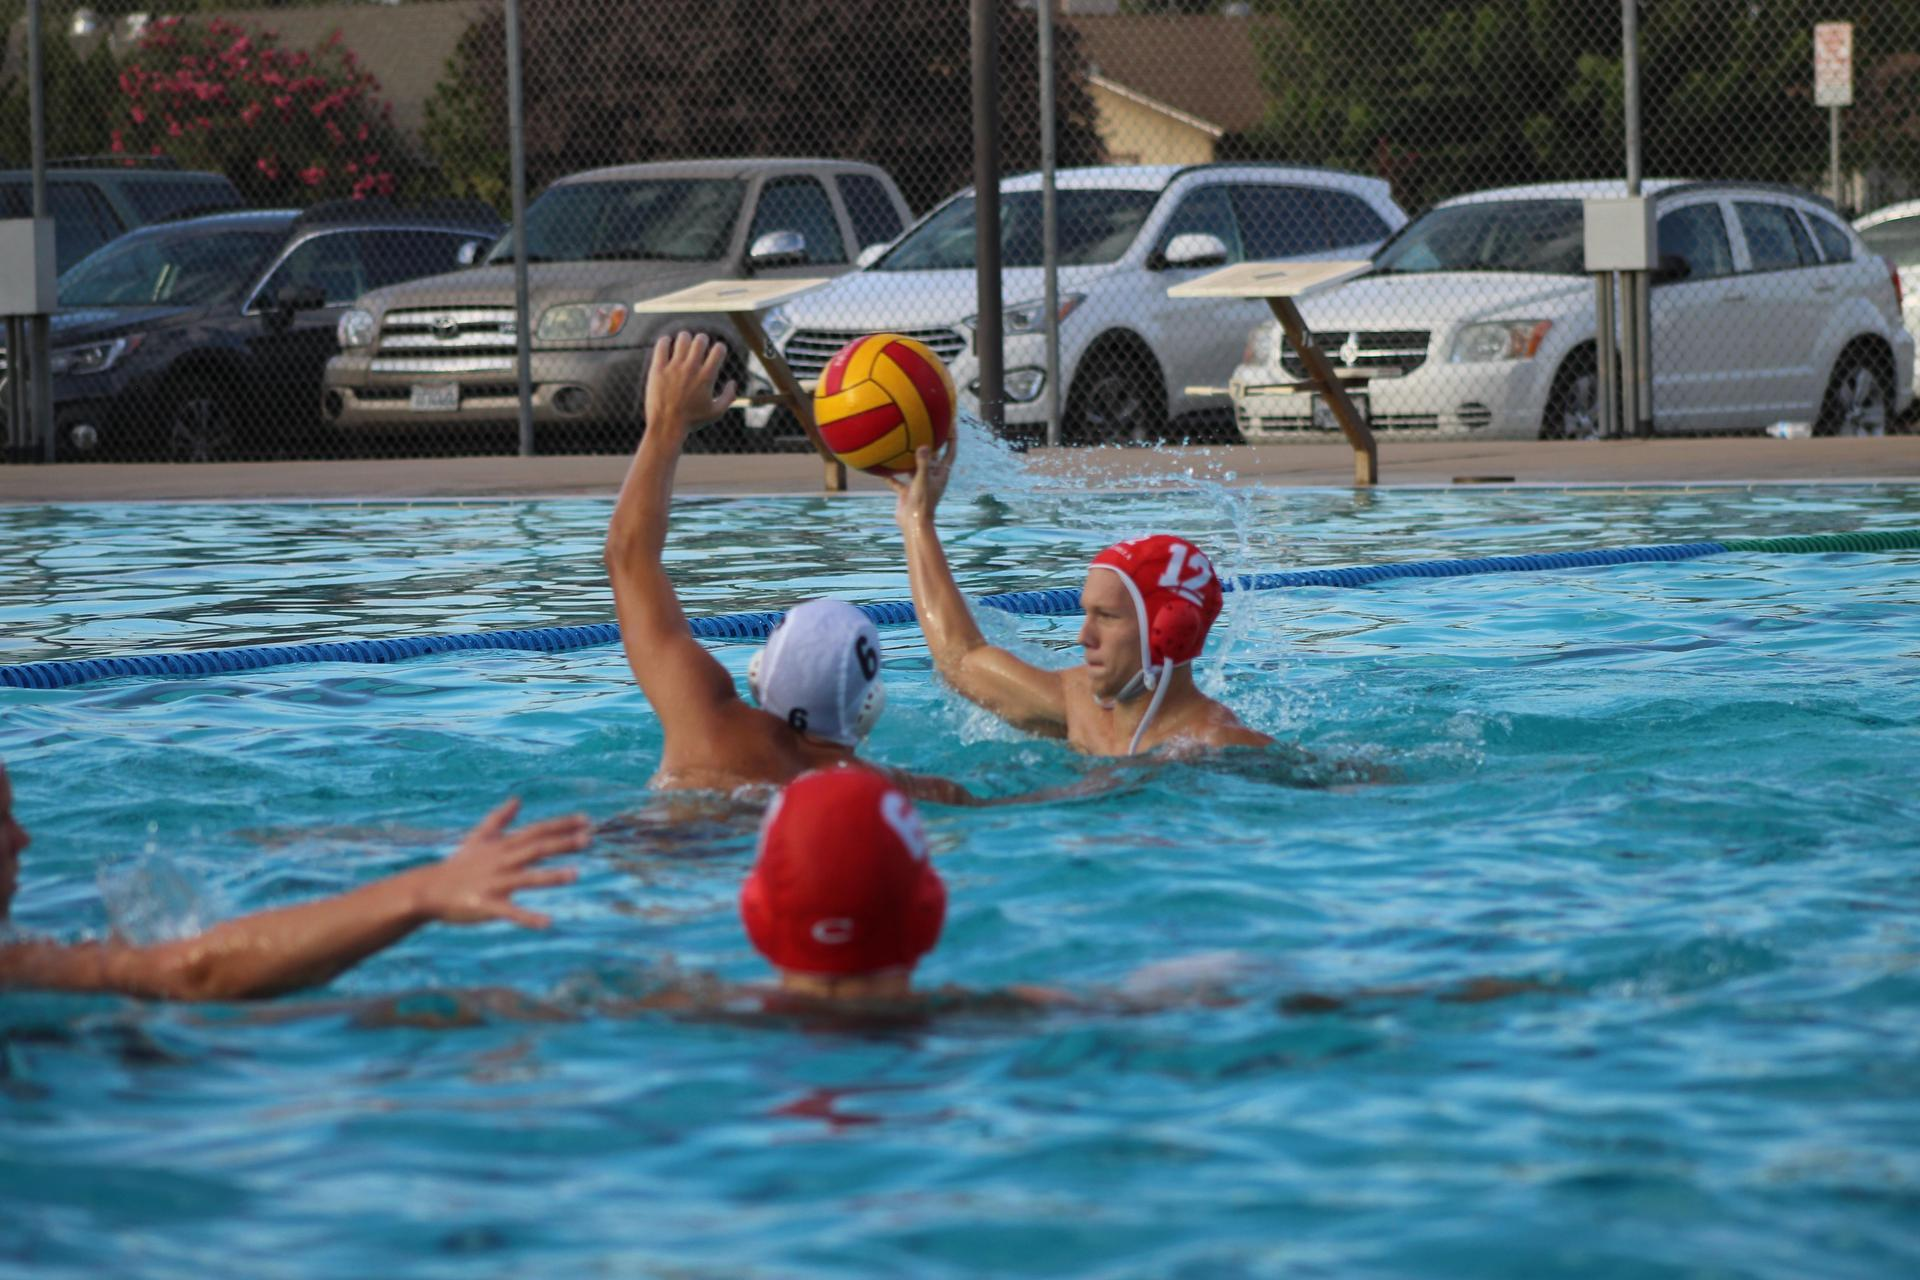 Boys playing water polo against Yosemite